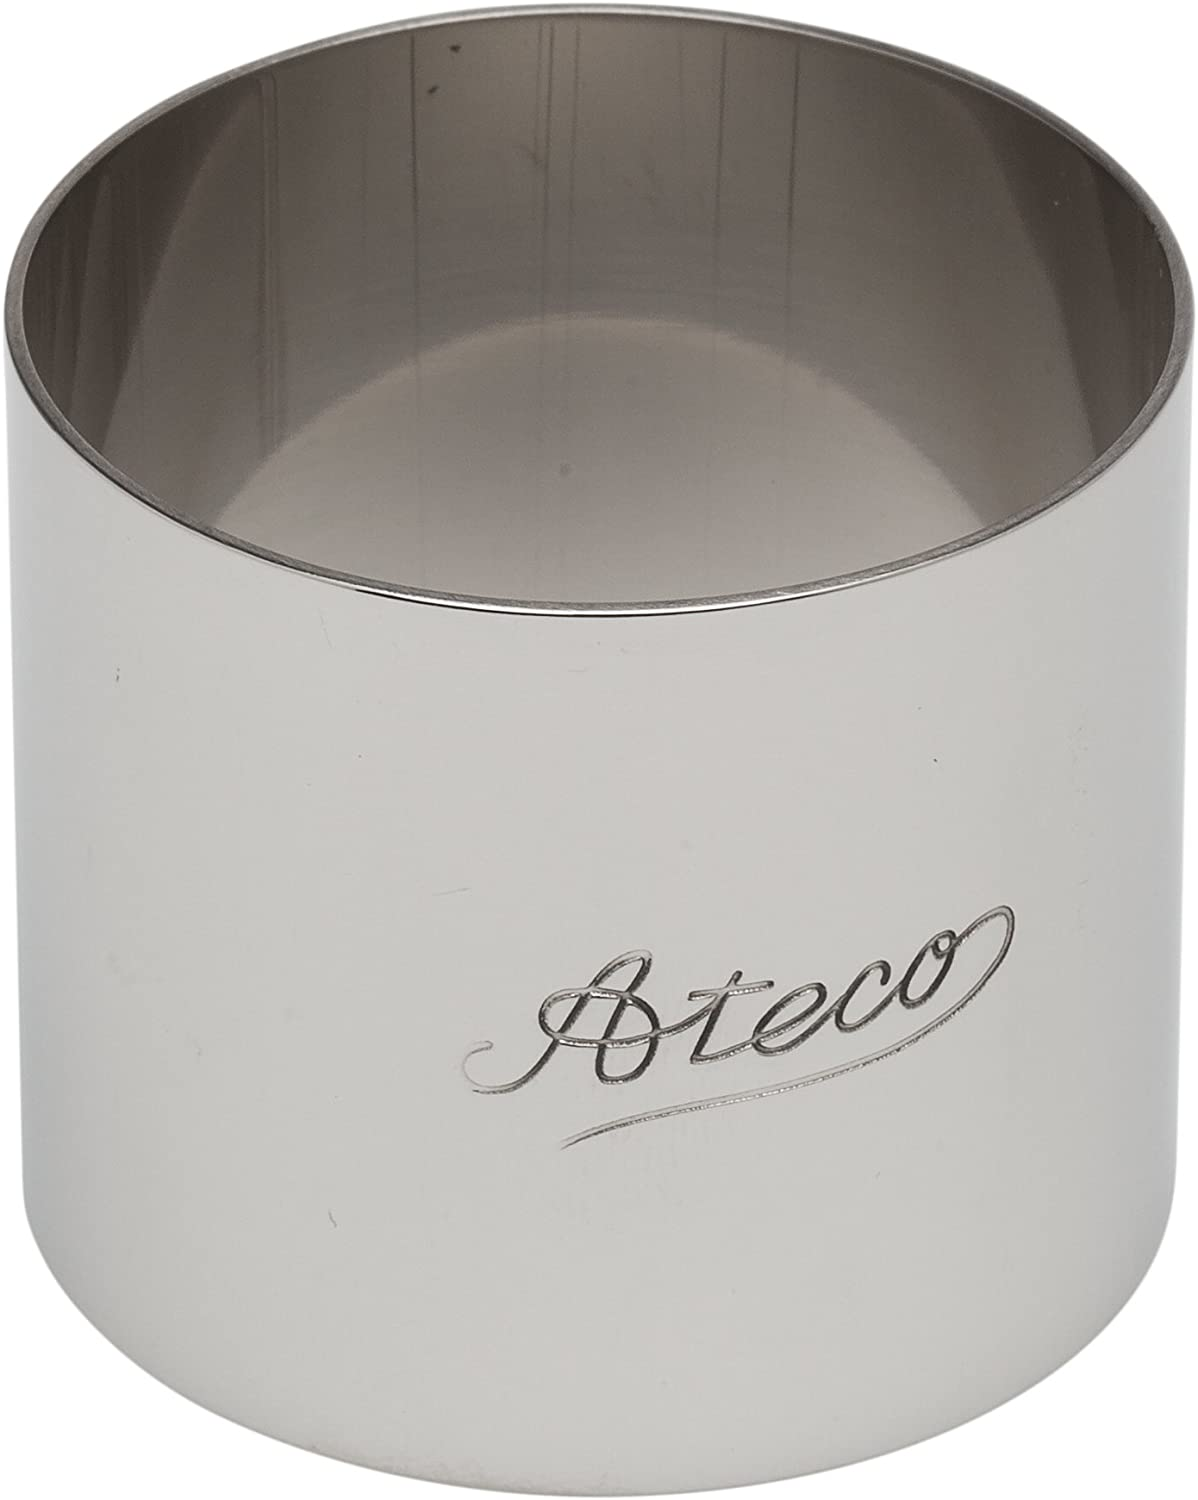 Ateco Round Stainless Steel Form, 2 by 1.75-Inches High